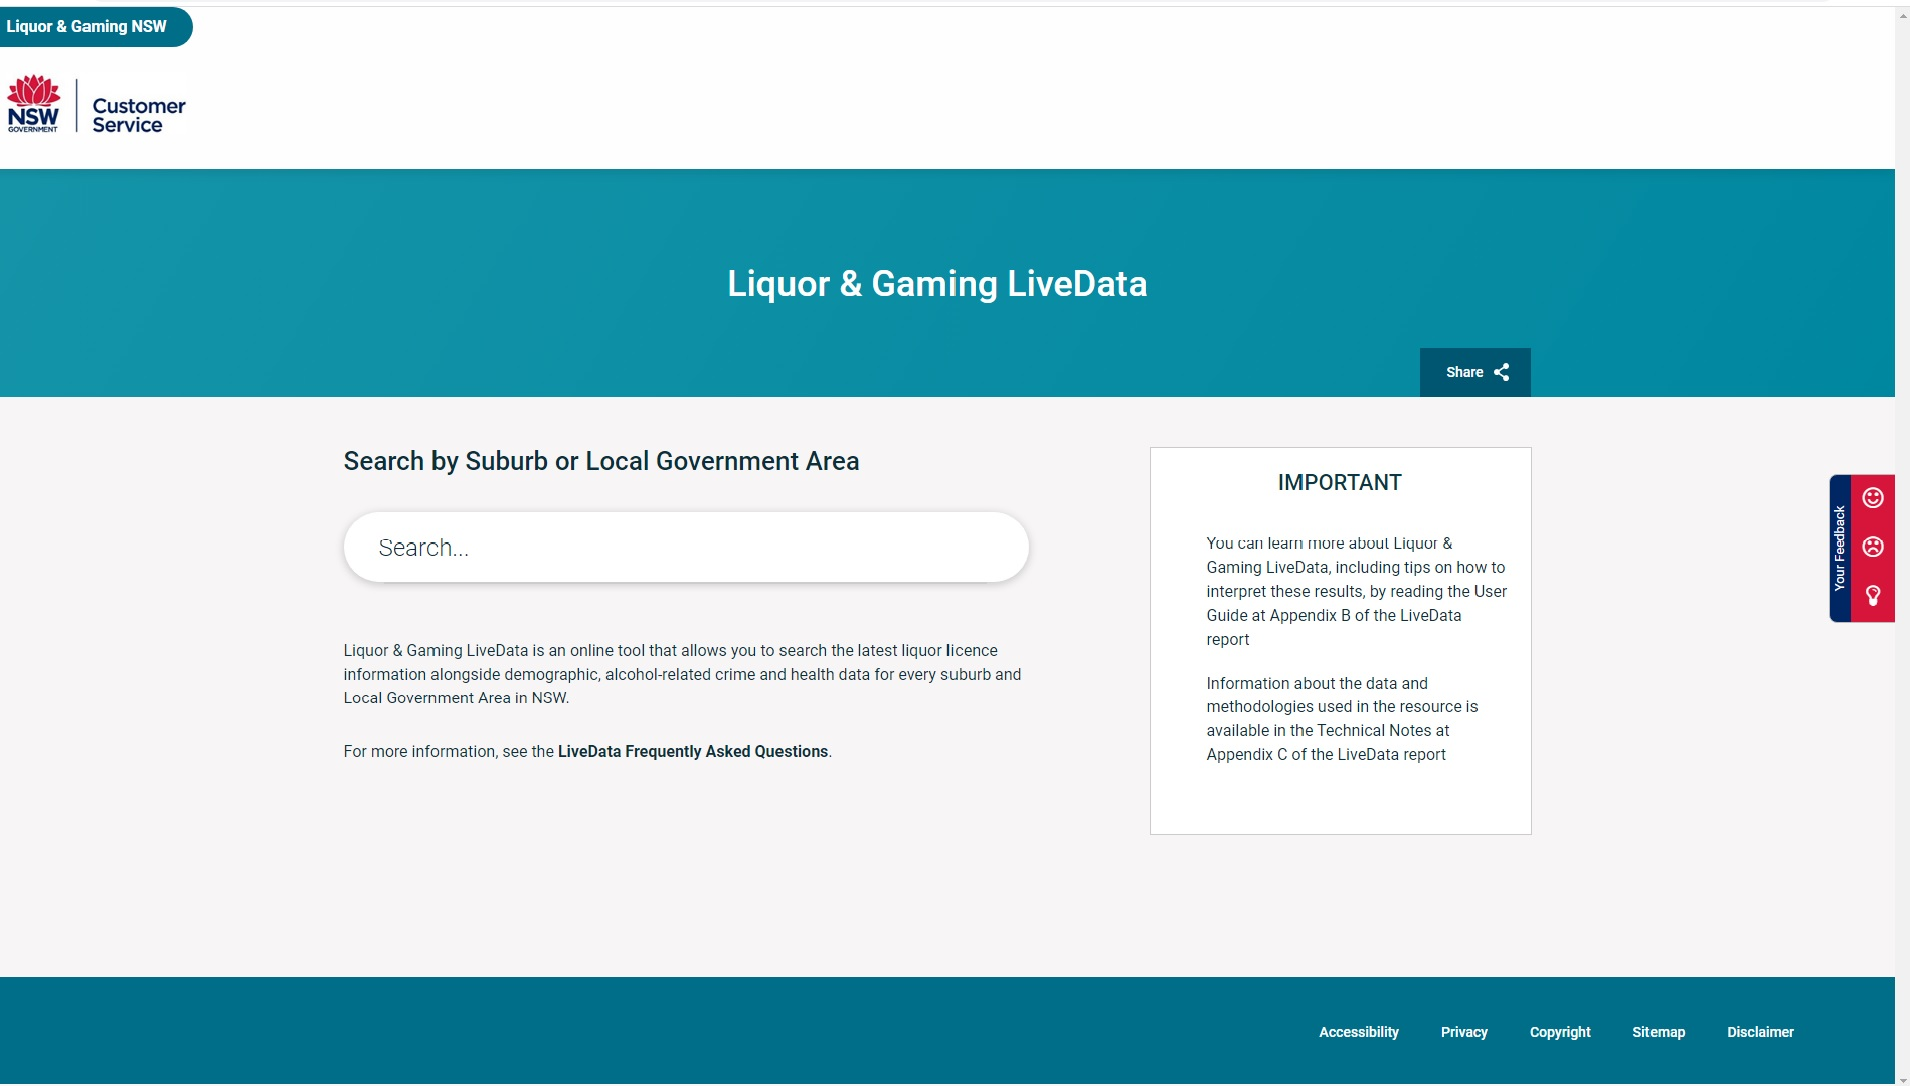 Adequacy of the NSW LiveData site for evidence-based liquor licence decisions